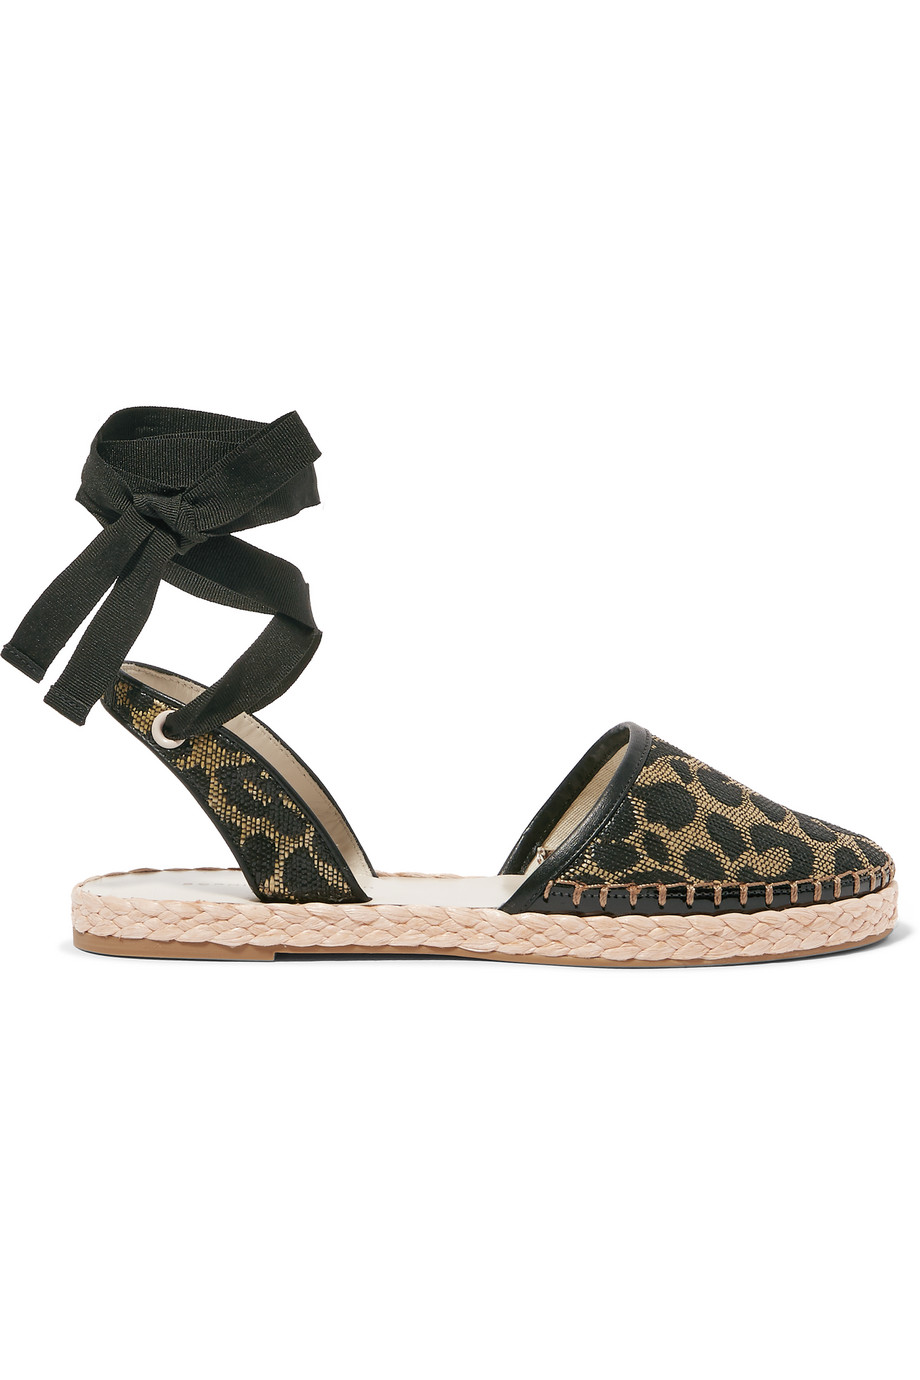 Sophia Webster Juana Leather-Trimmed Jacquard Espadrilles, Leopard Print, Women's US Size: 6, Size: 36.5